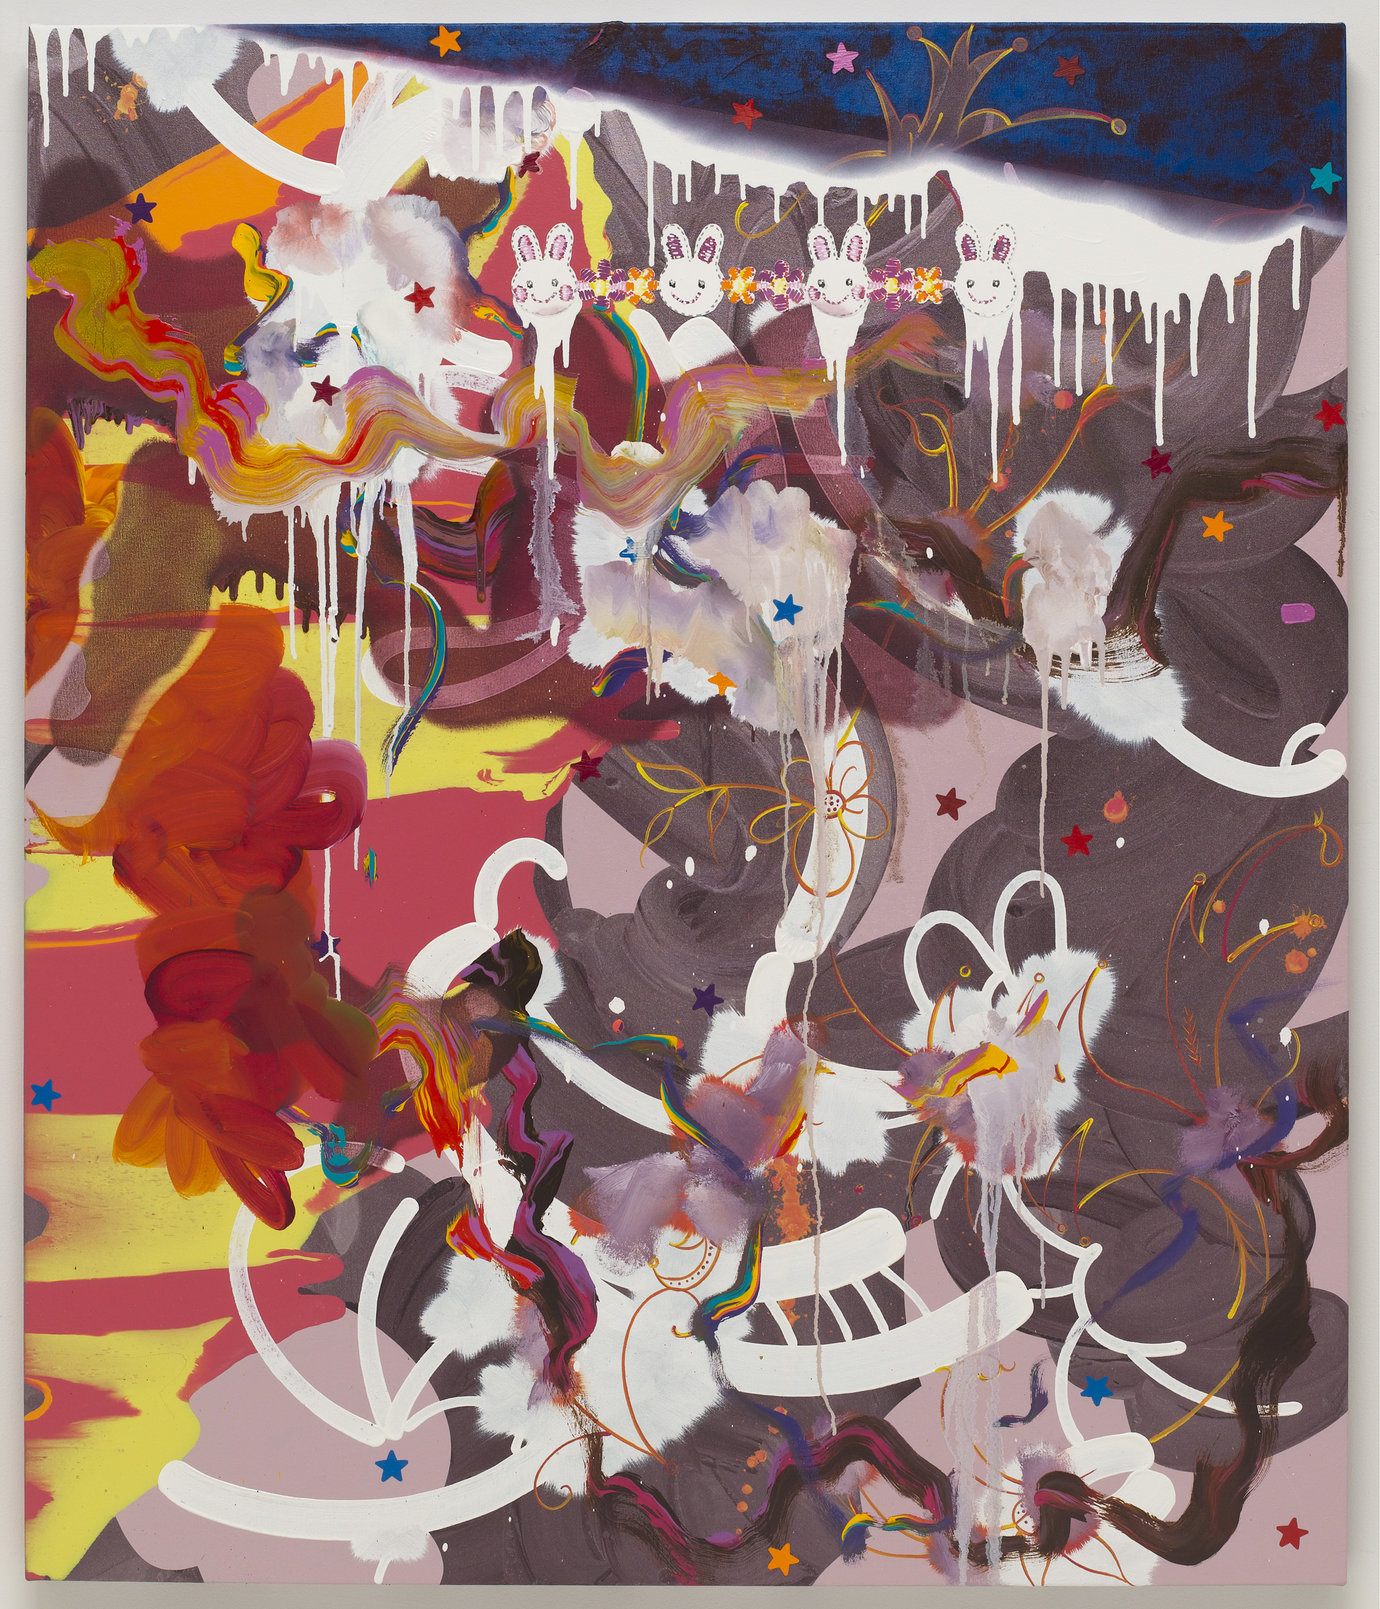 ", 2009. Oil, acrylic and gouache on canvas, 52"" x 44"" (132.1 cm x 111.8 cm)."